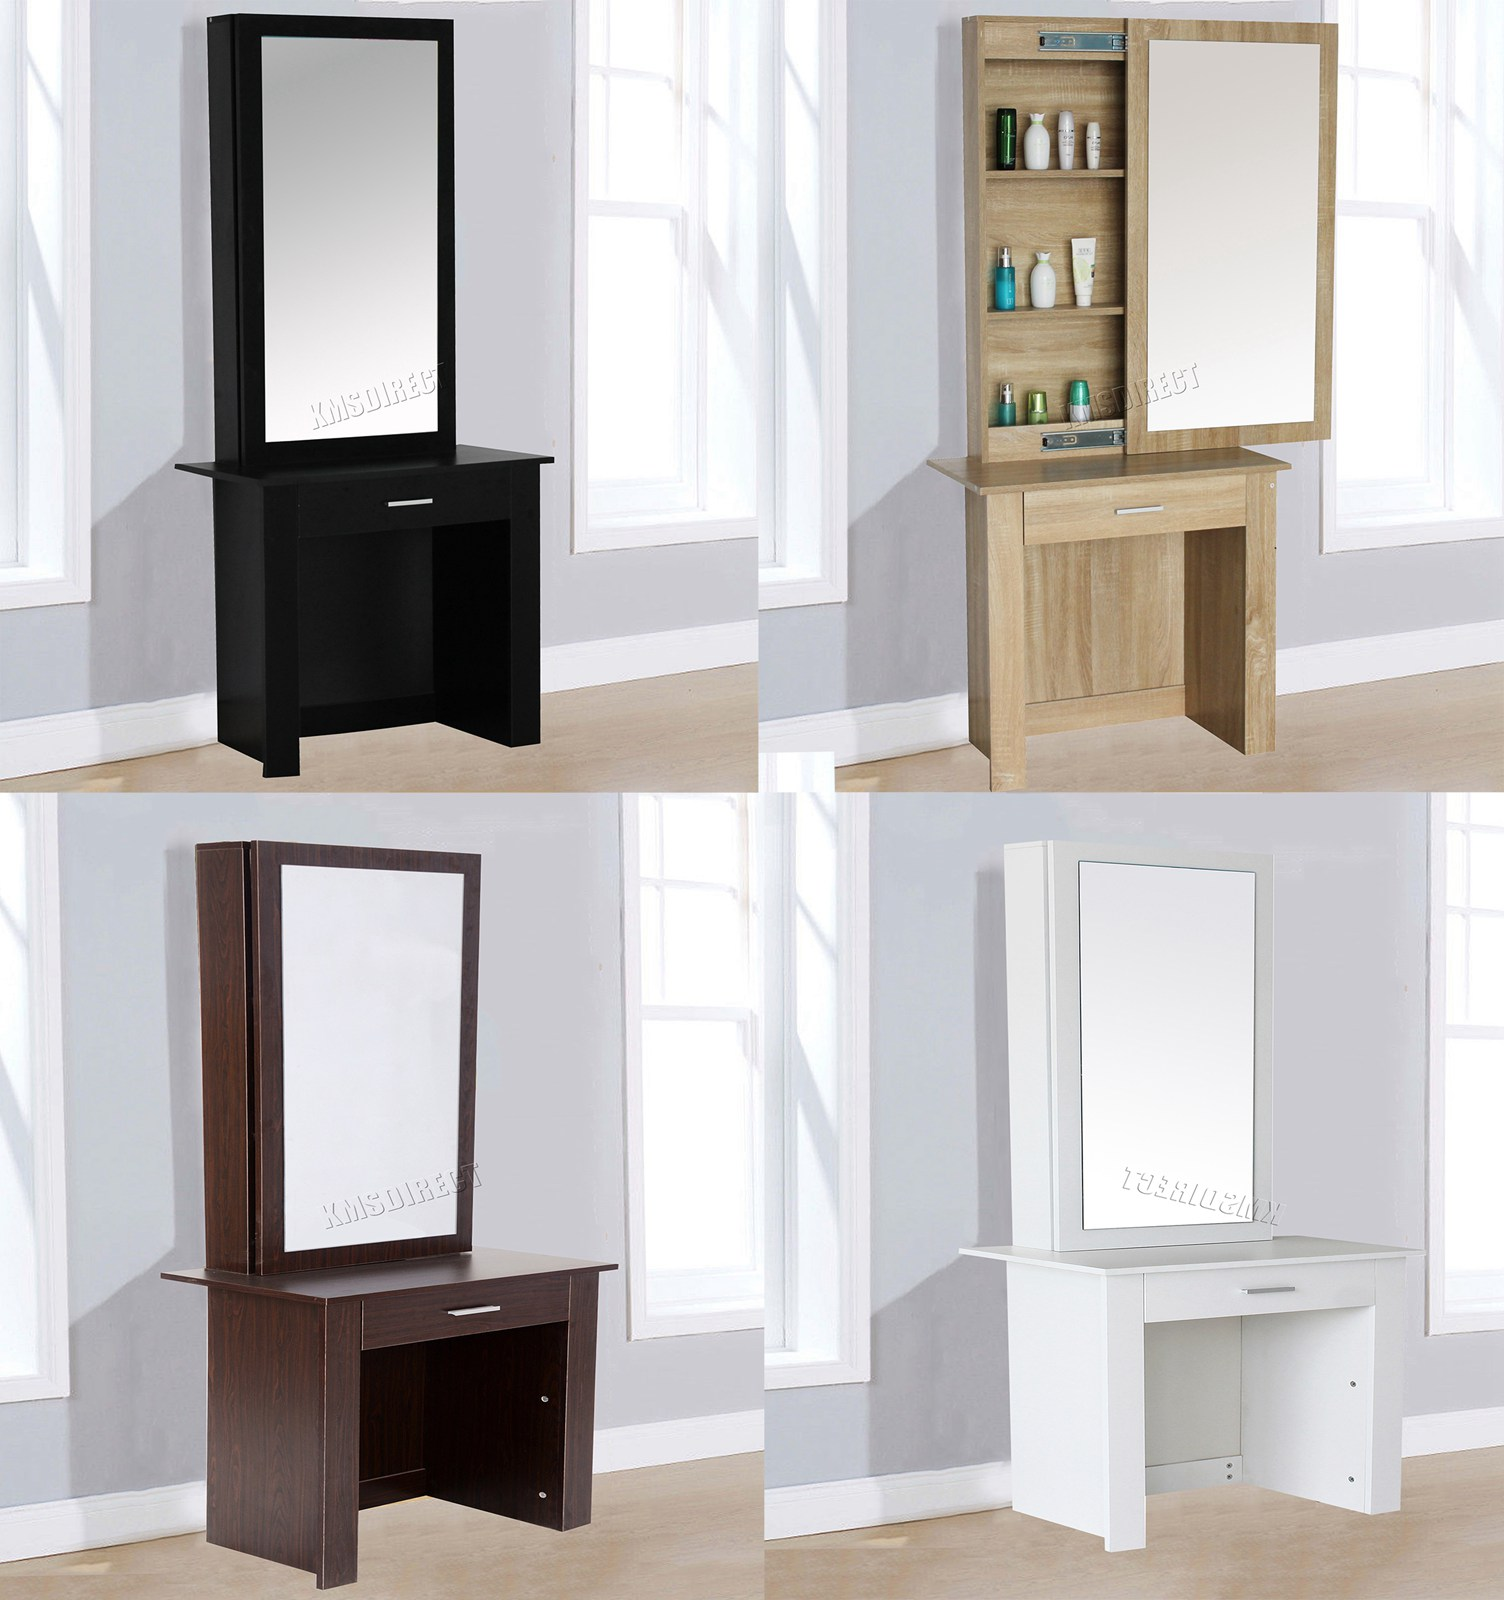 Sentinel Westwood Dressing Table Modern Wooden Makeup With Sliding Mirror Dt04